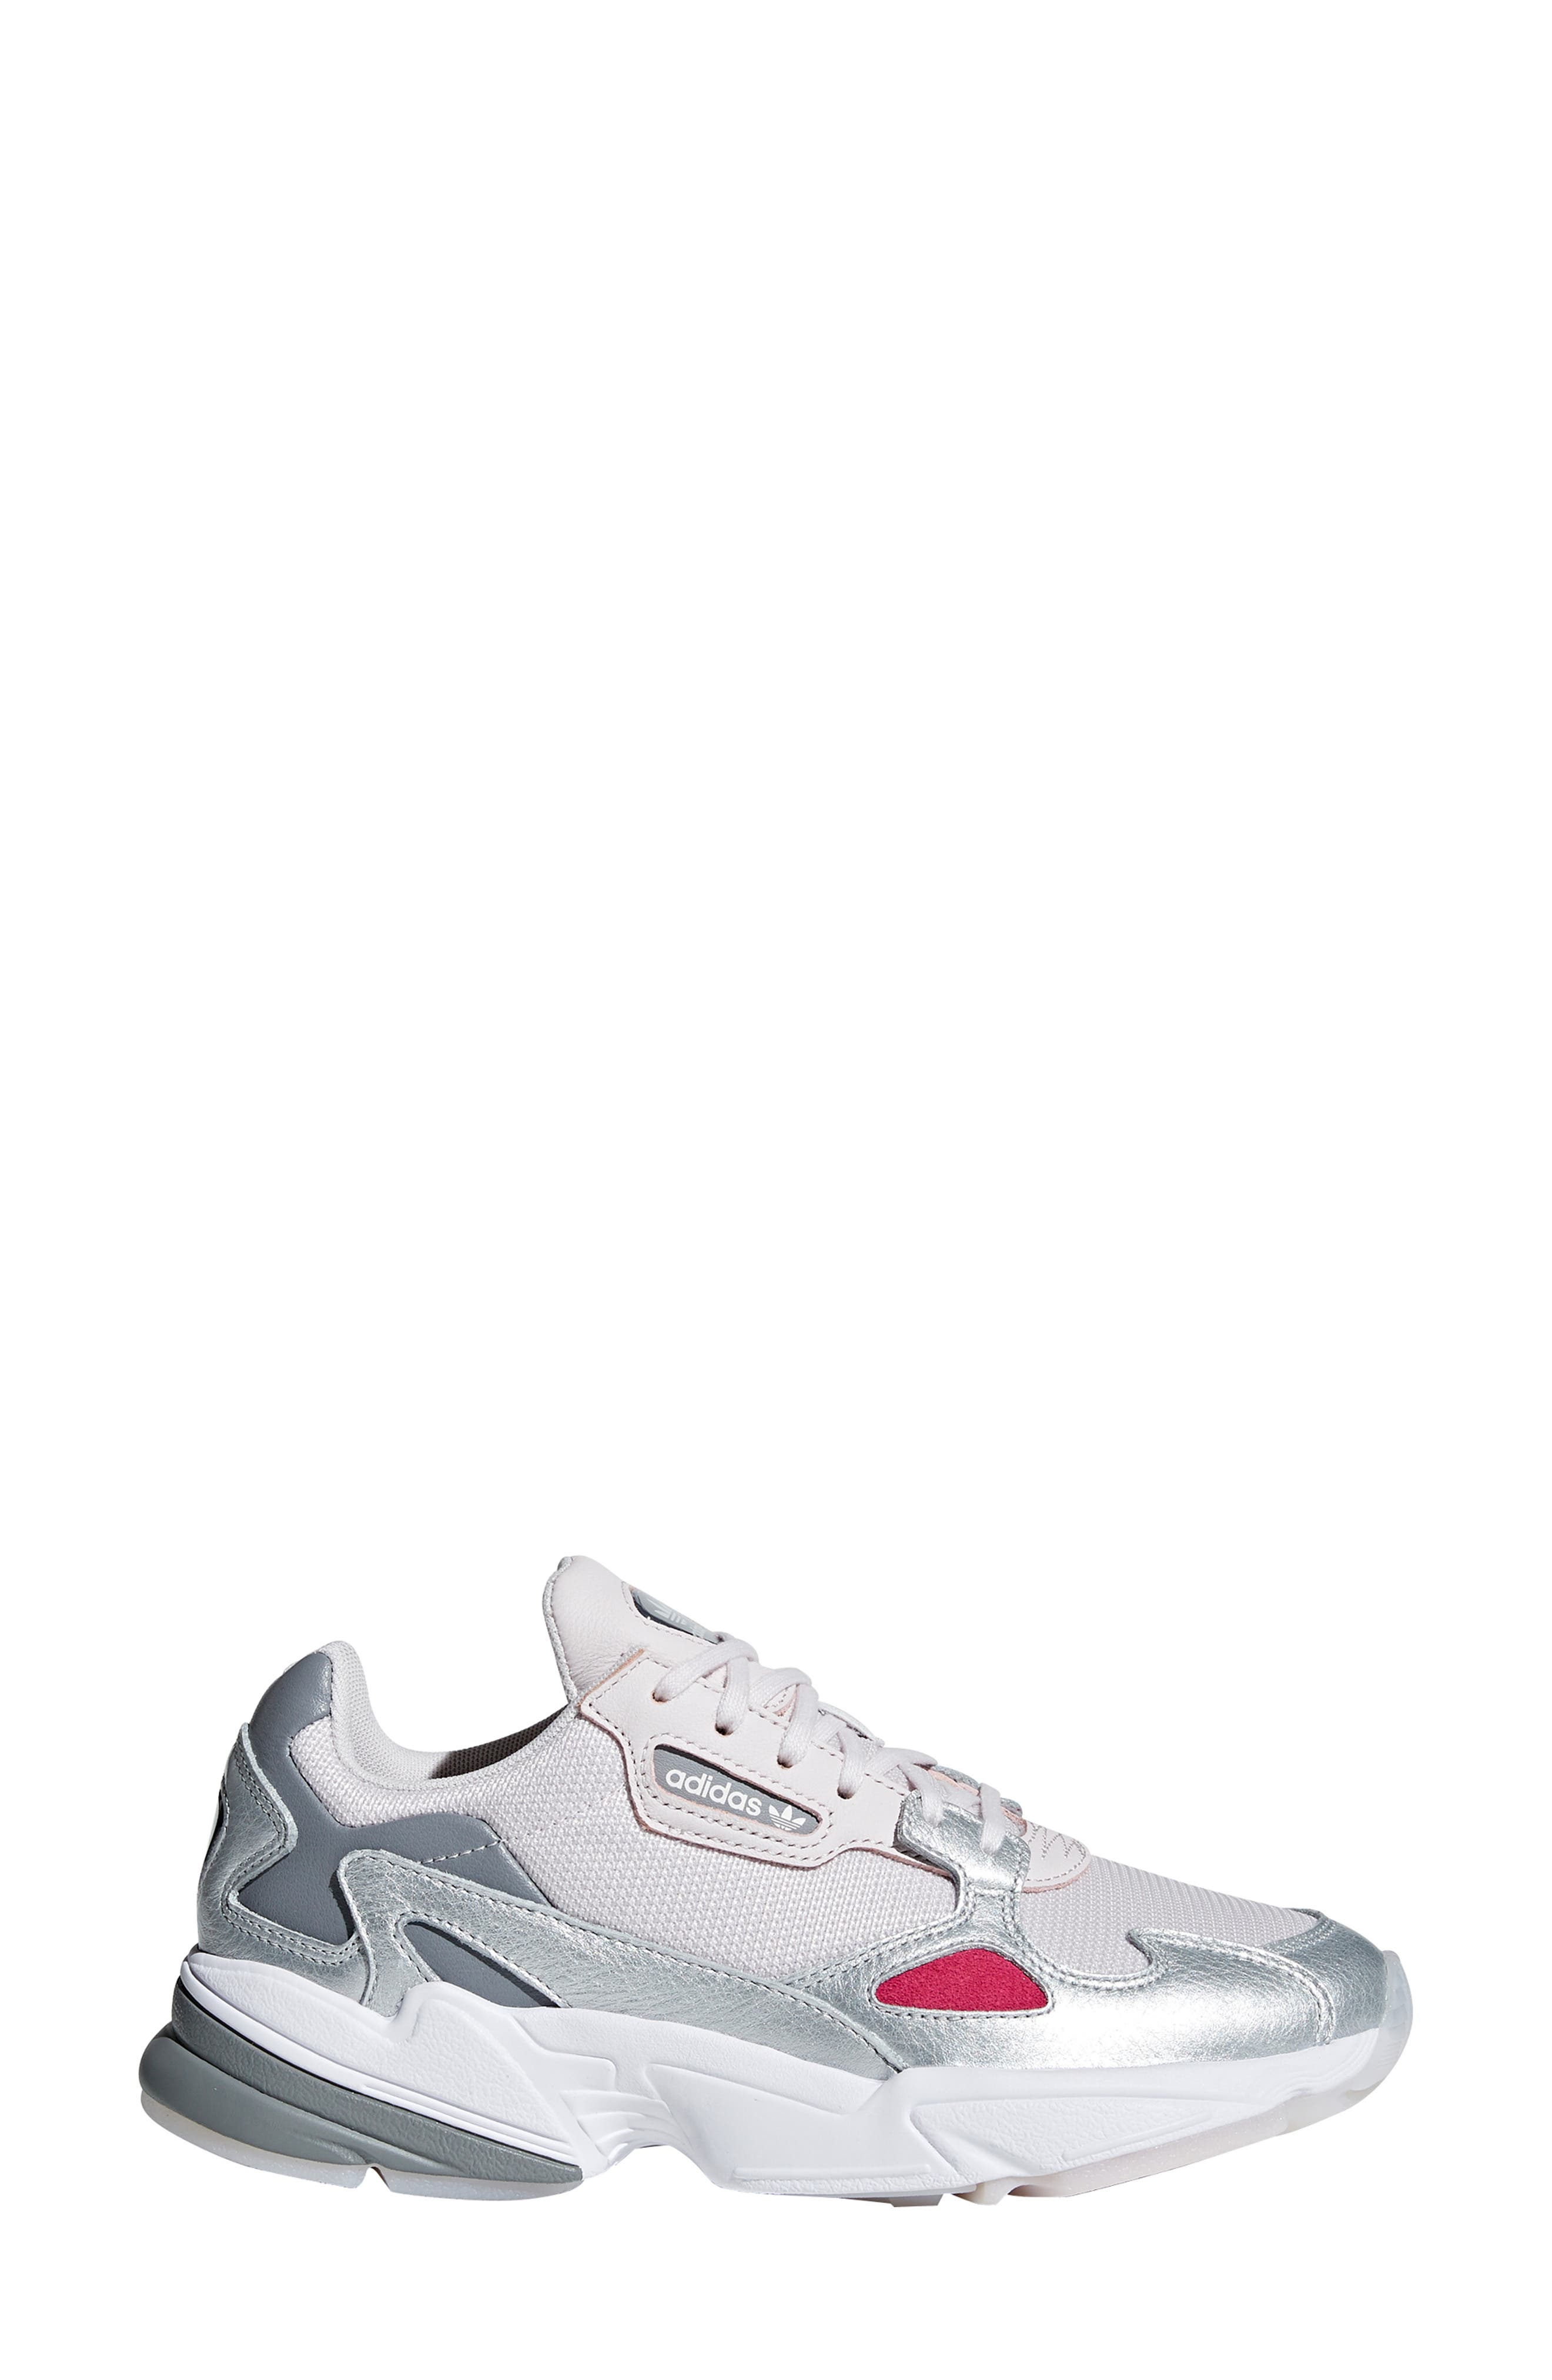 Falcon Sneaker,                             Alternate thumbnail 3, color,                             ORCHID TINT/ SILVER